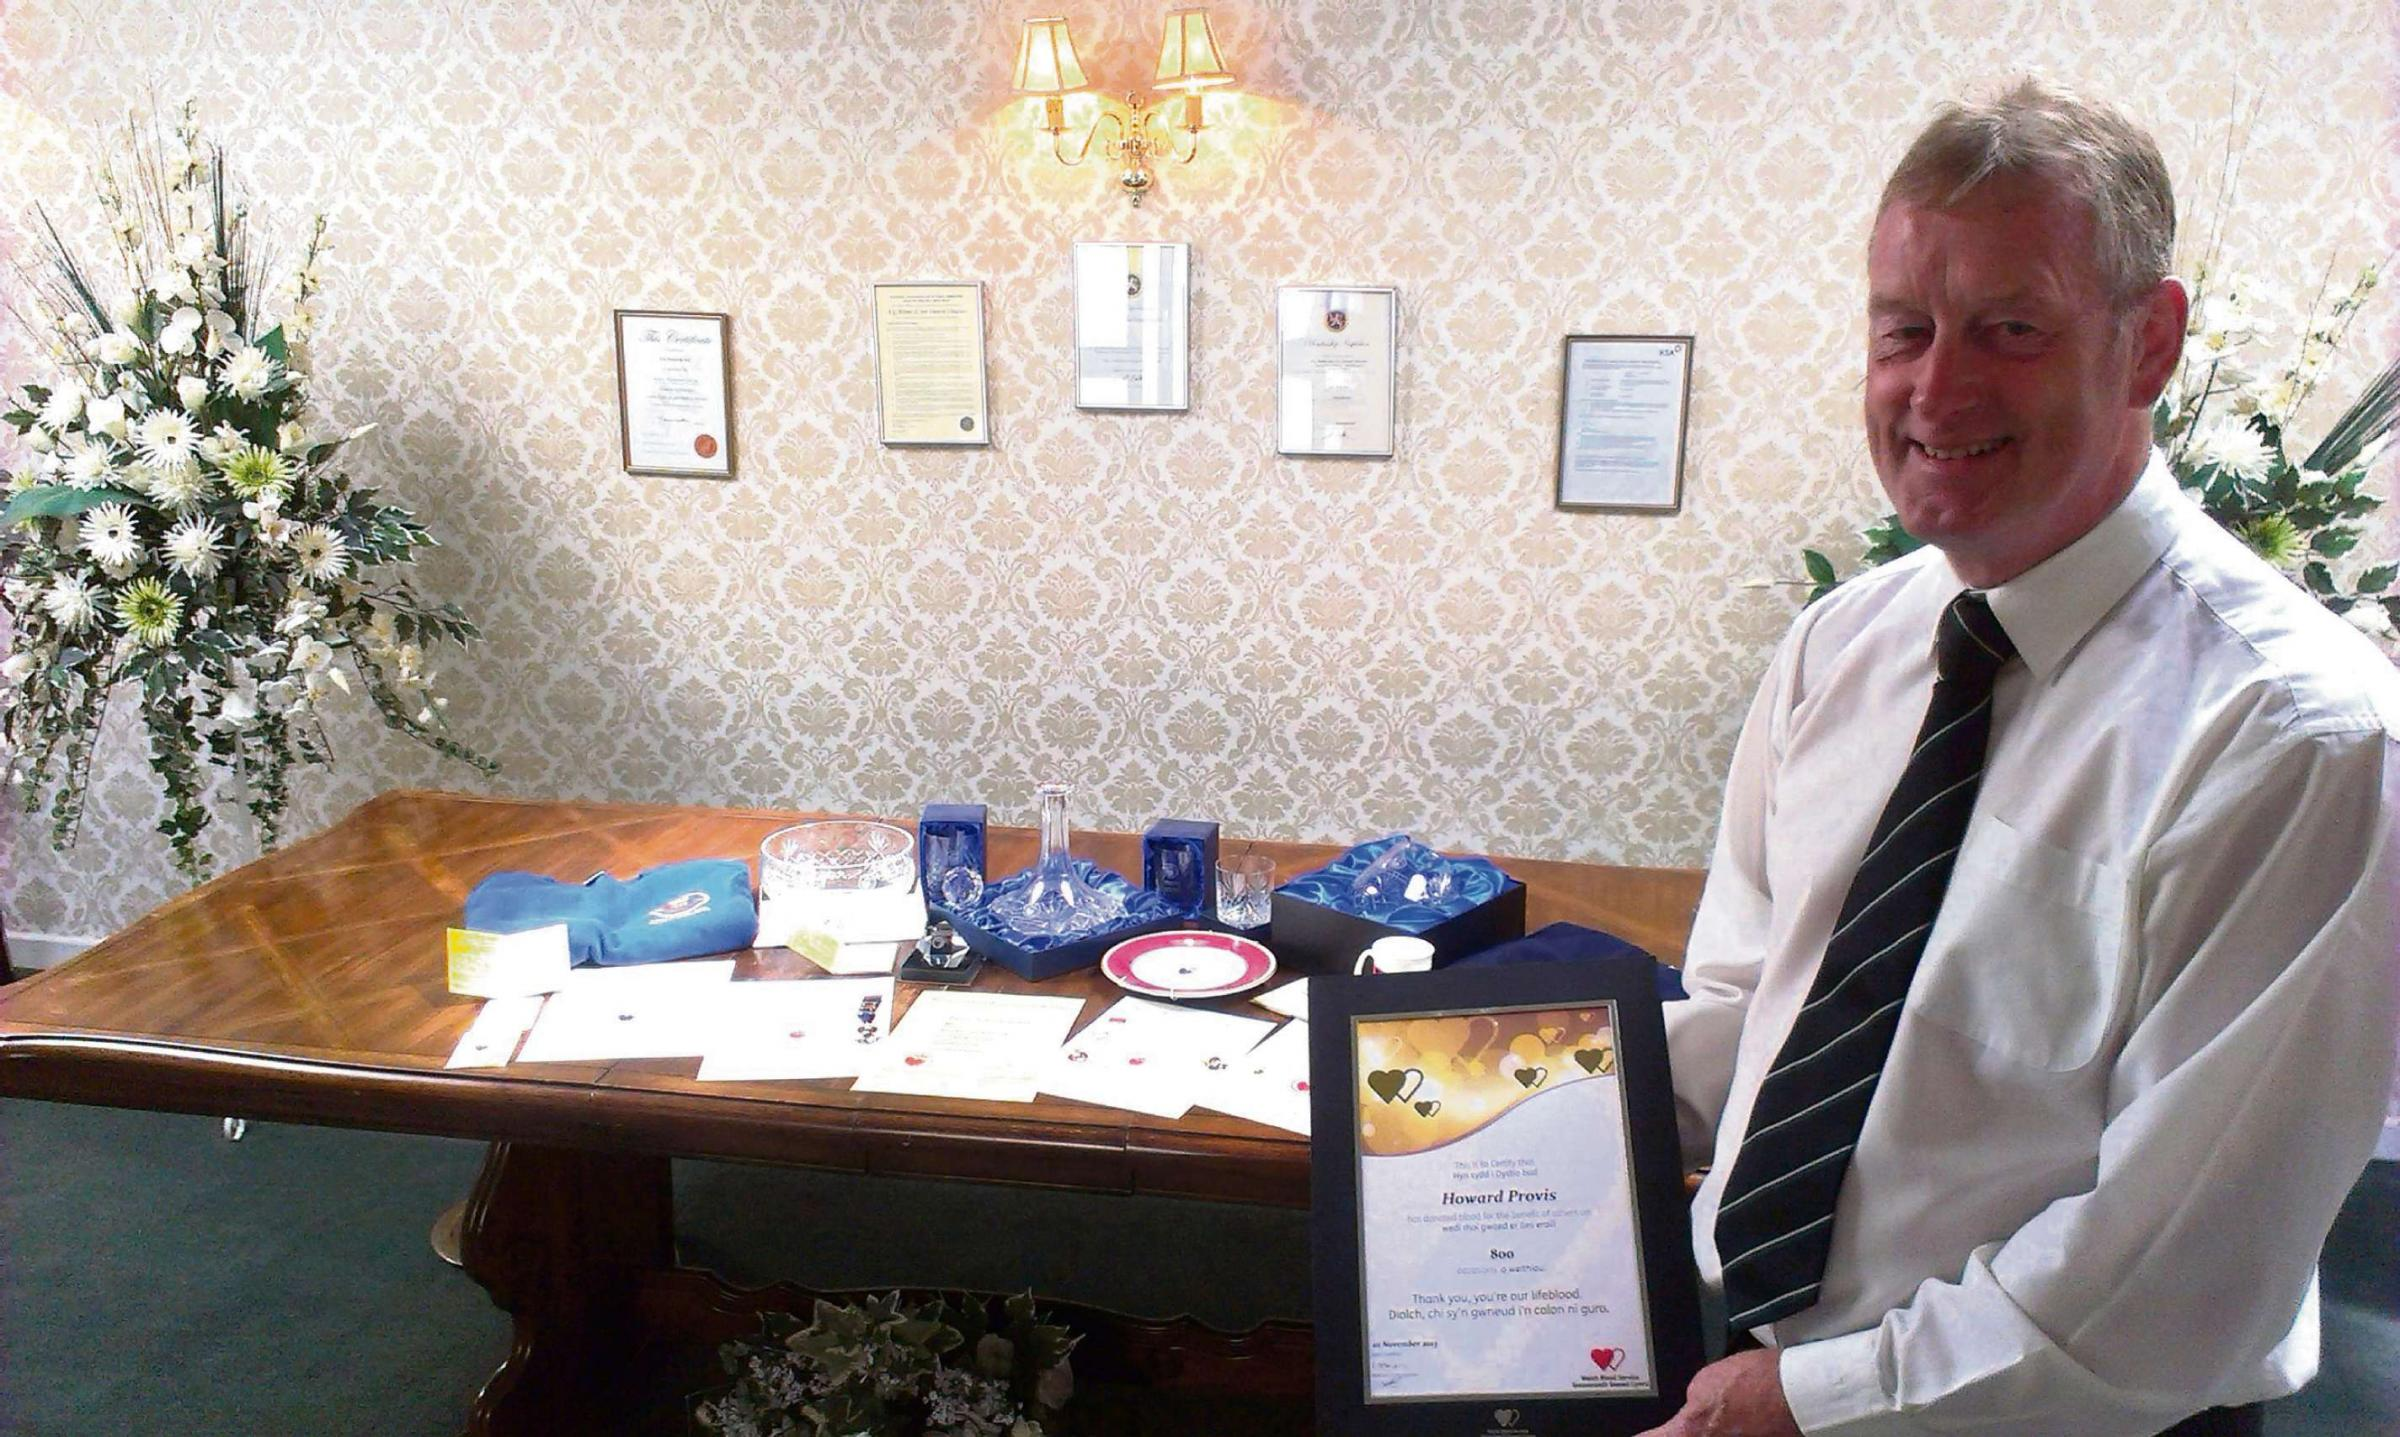 DONOR: Howard Provis with his awards from the Welsh Blood Service (7989631)